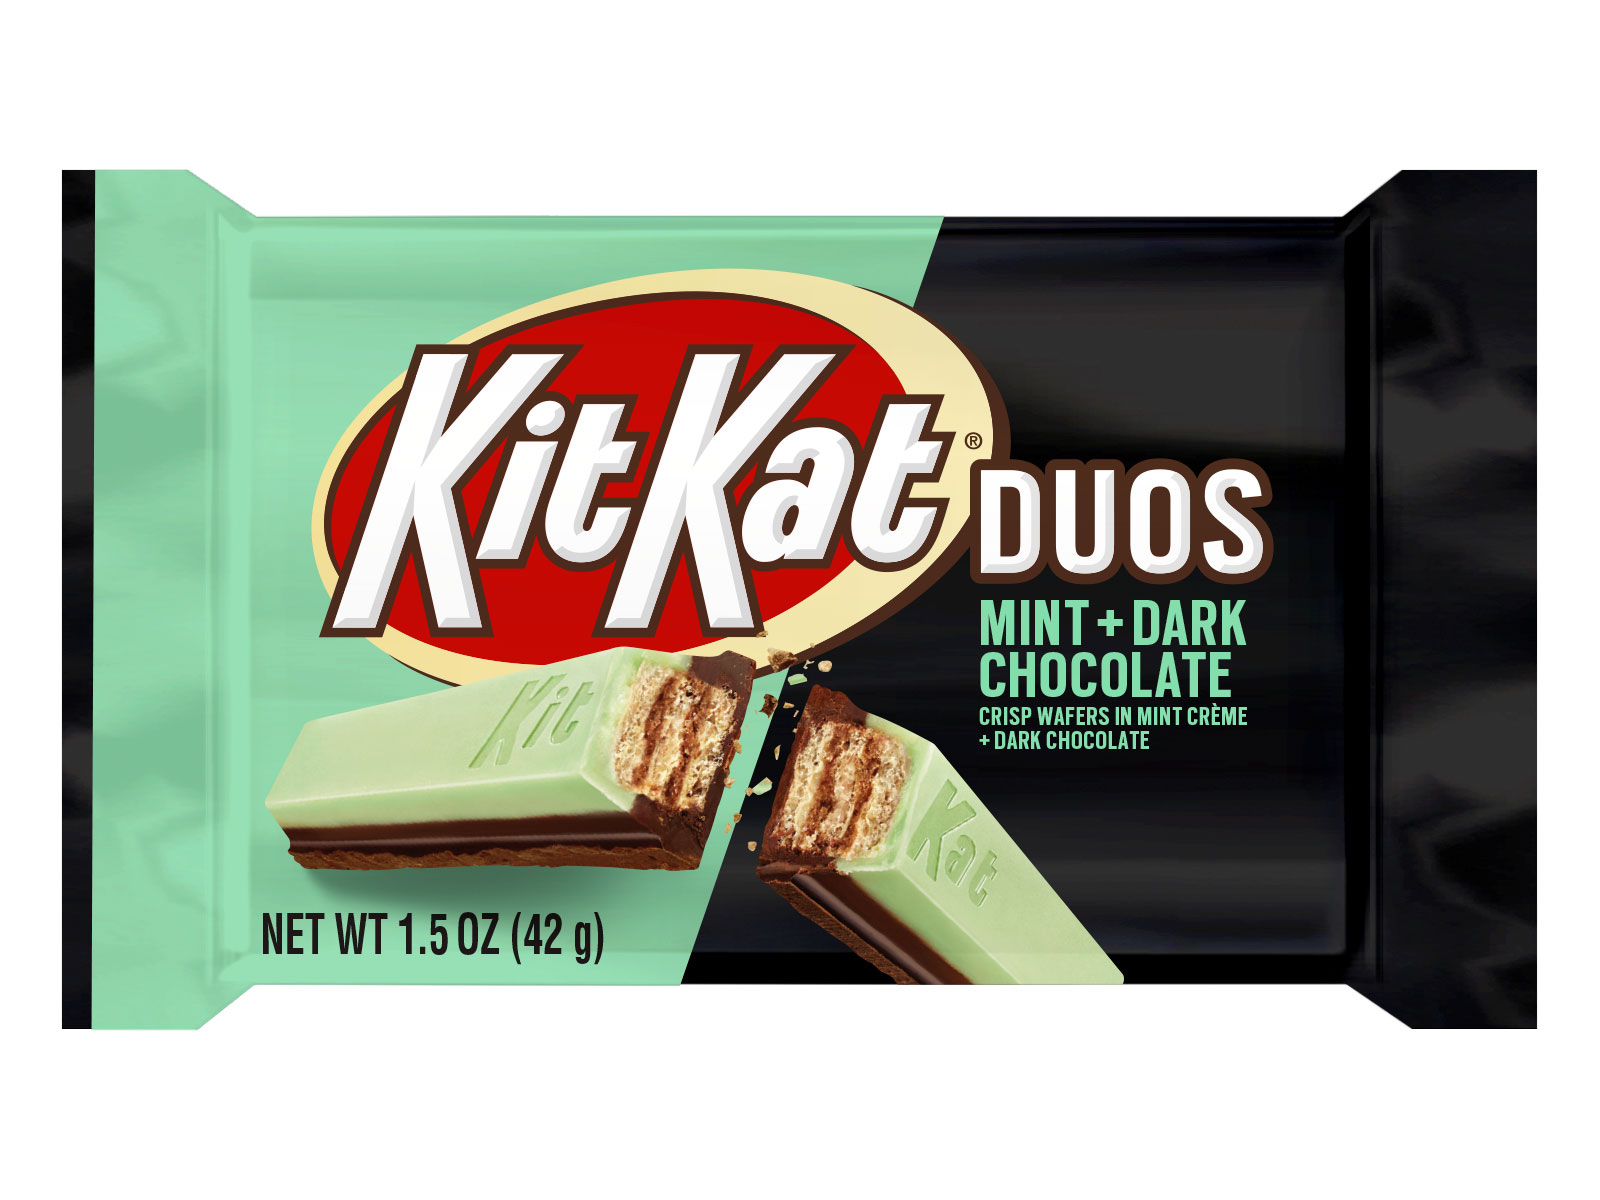 kit-kat-mint-dark-choclate-1-FT-BLOG0419.jpg